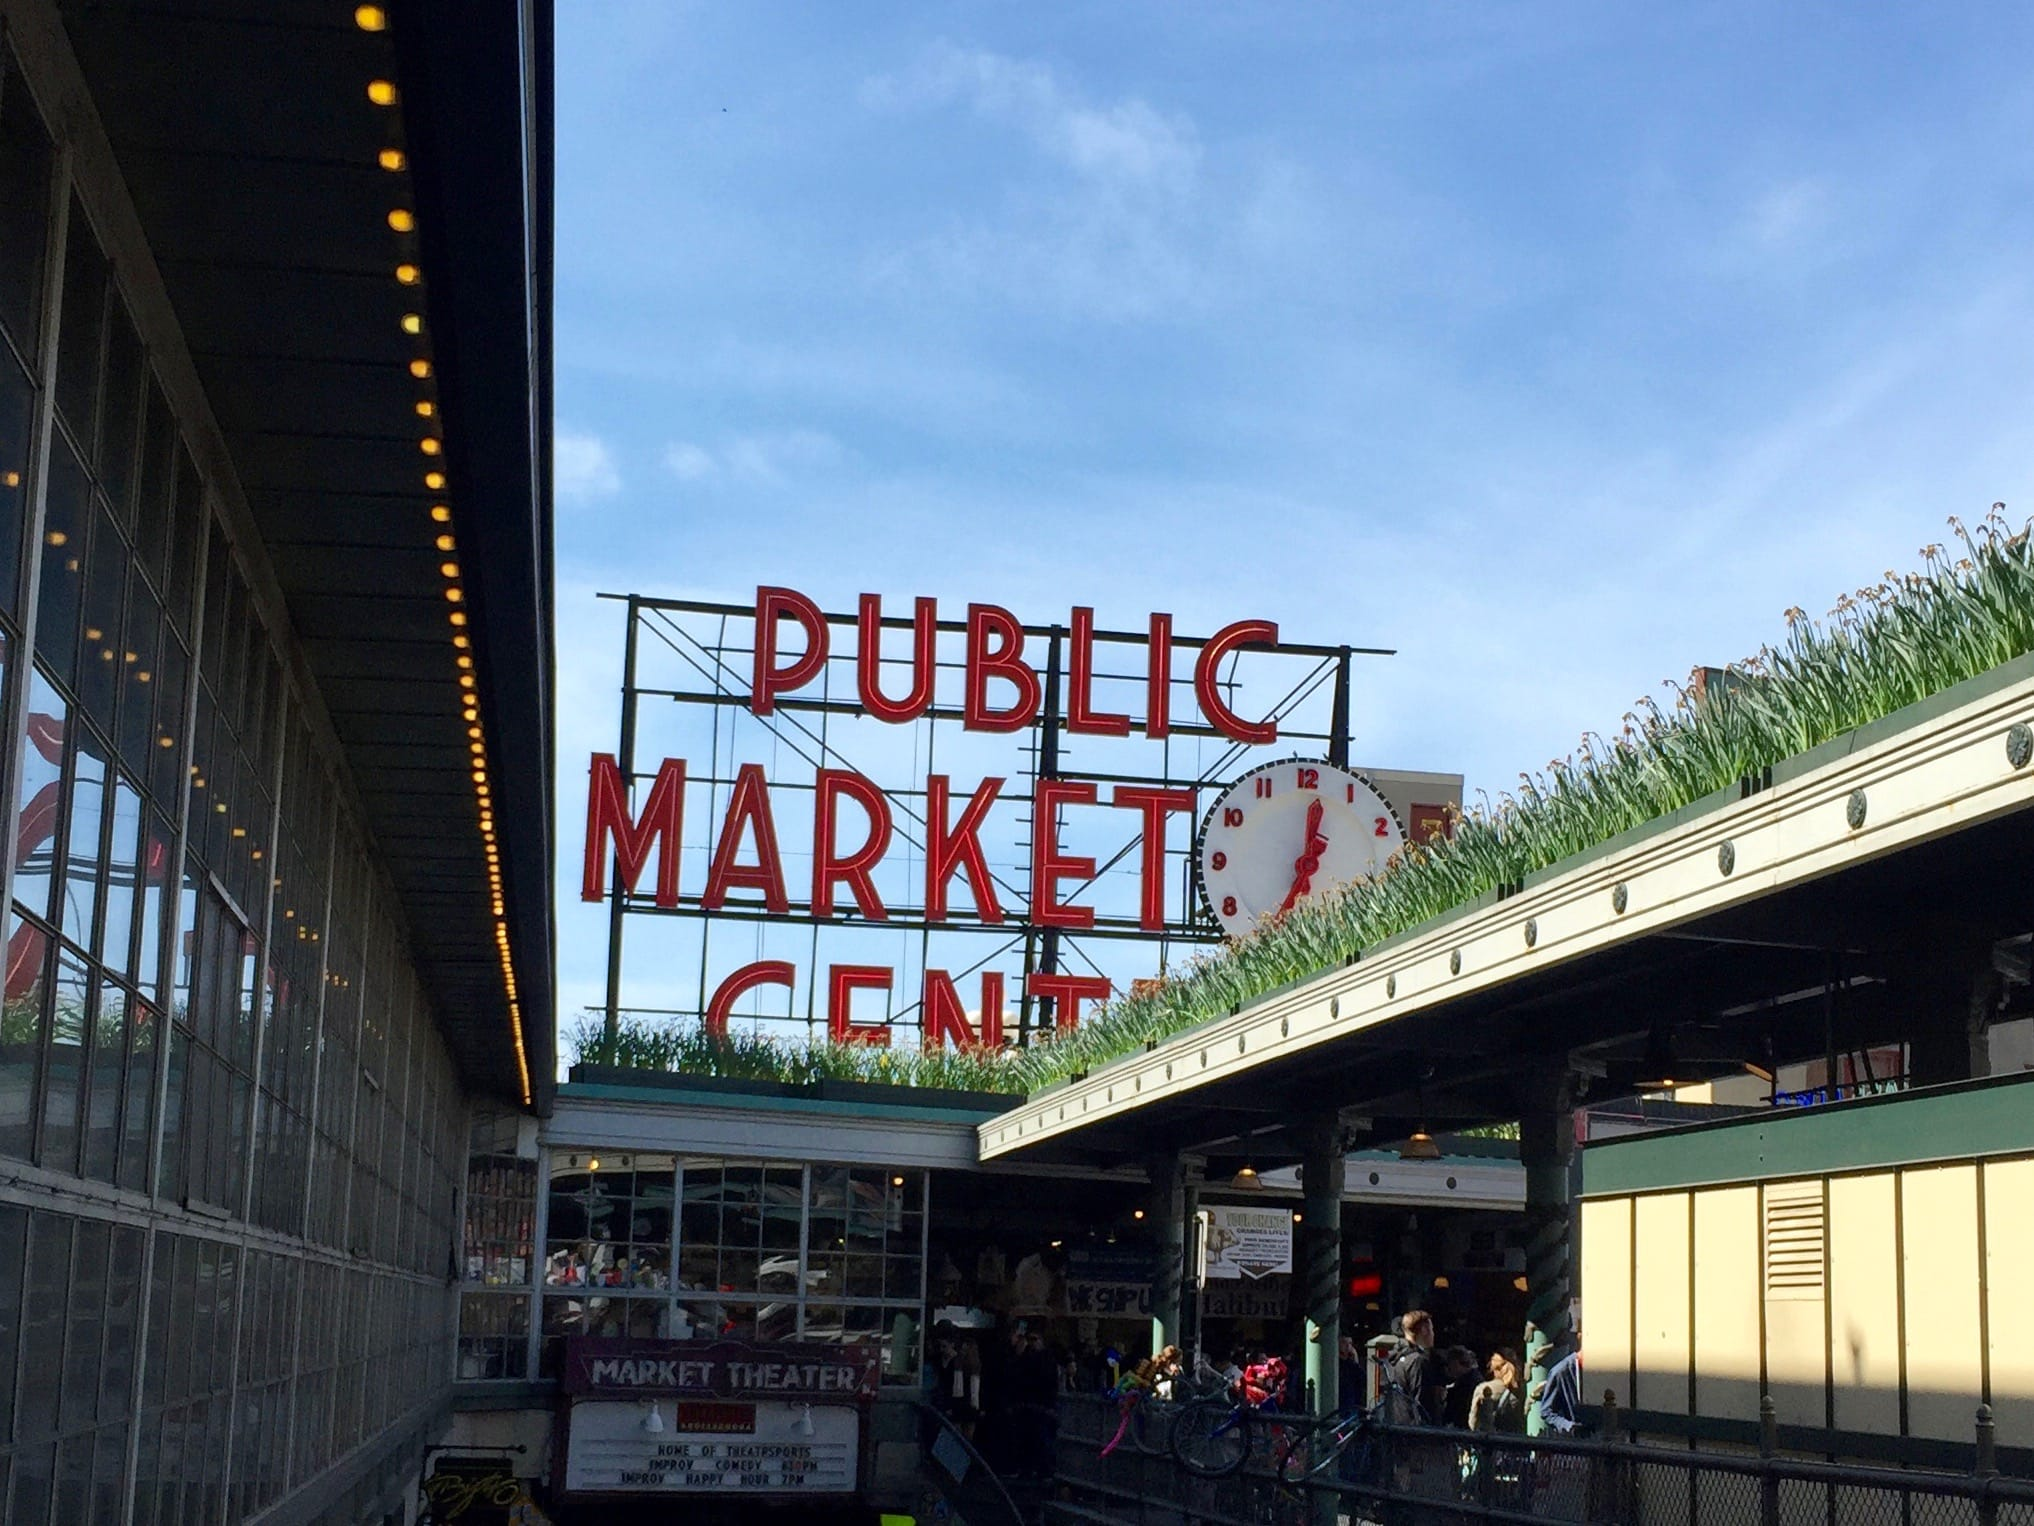 The first thing we did upon arrival at our hotel (we loved the Warwick for so many reasons) was venture out to the Pike's Place Market. They have the original Starbucks, fish being thrown around, flowers by the bundles and all sorts of other things to see.